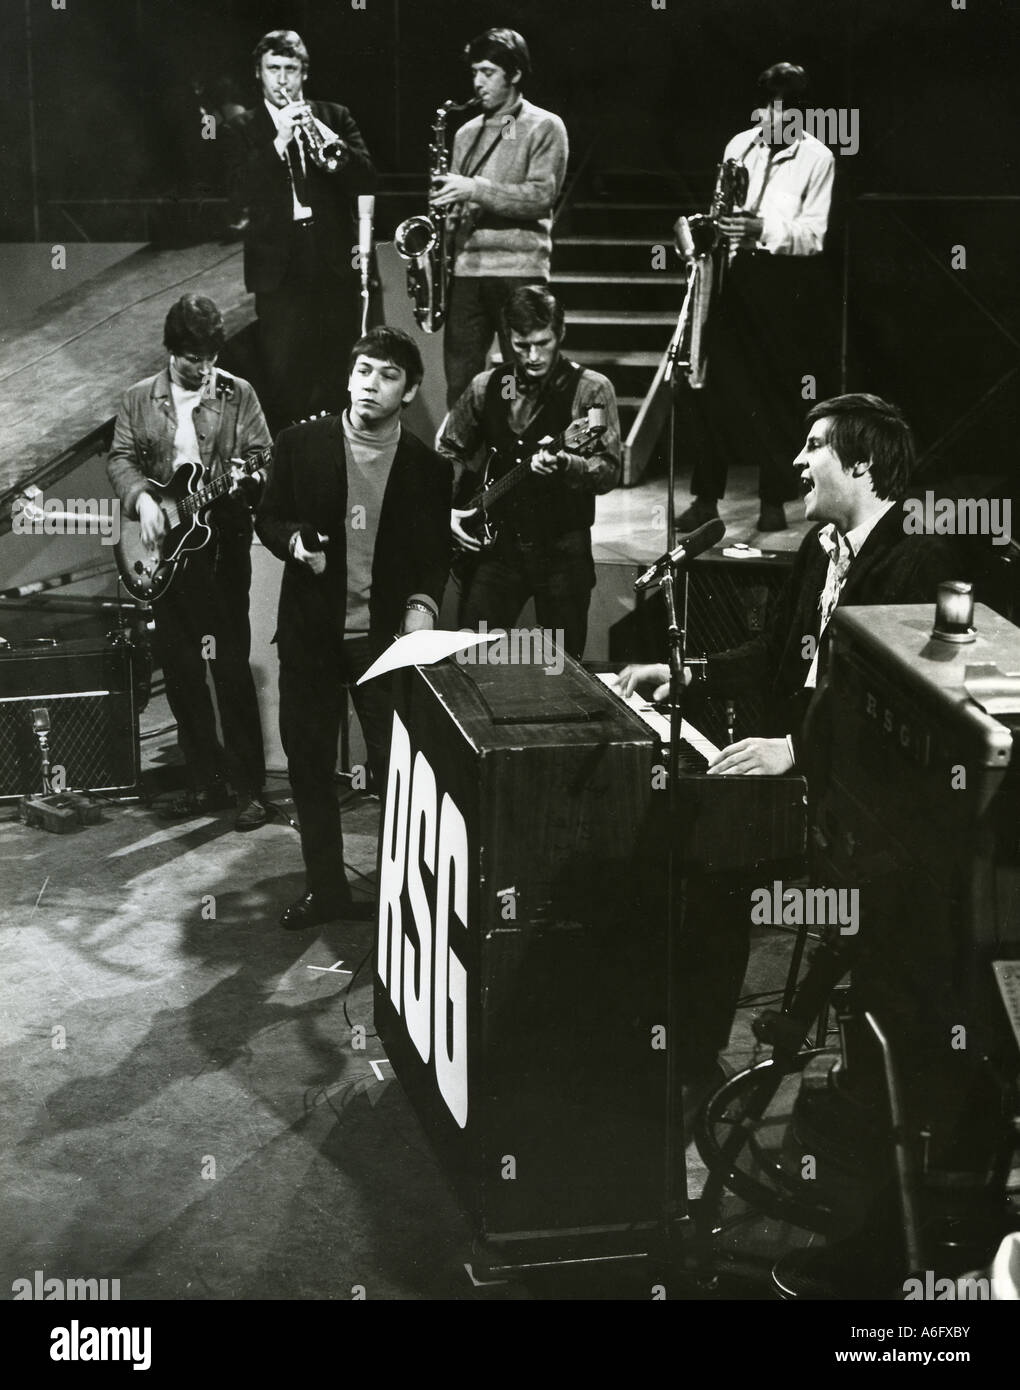 ERIC BURDON and Alan Price on TV s Ready Steady Go about 1967 - Stock Image